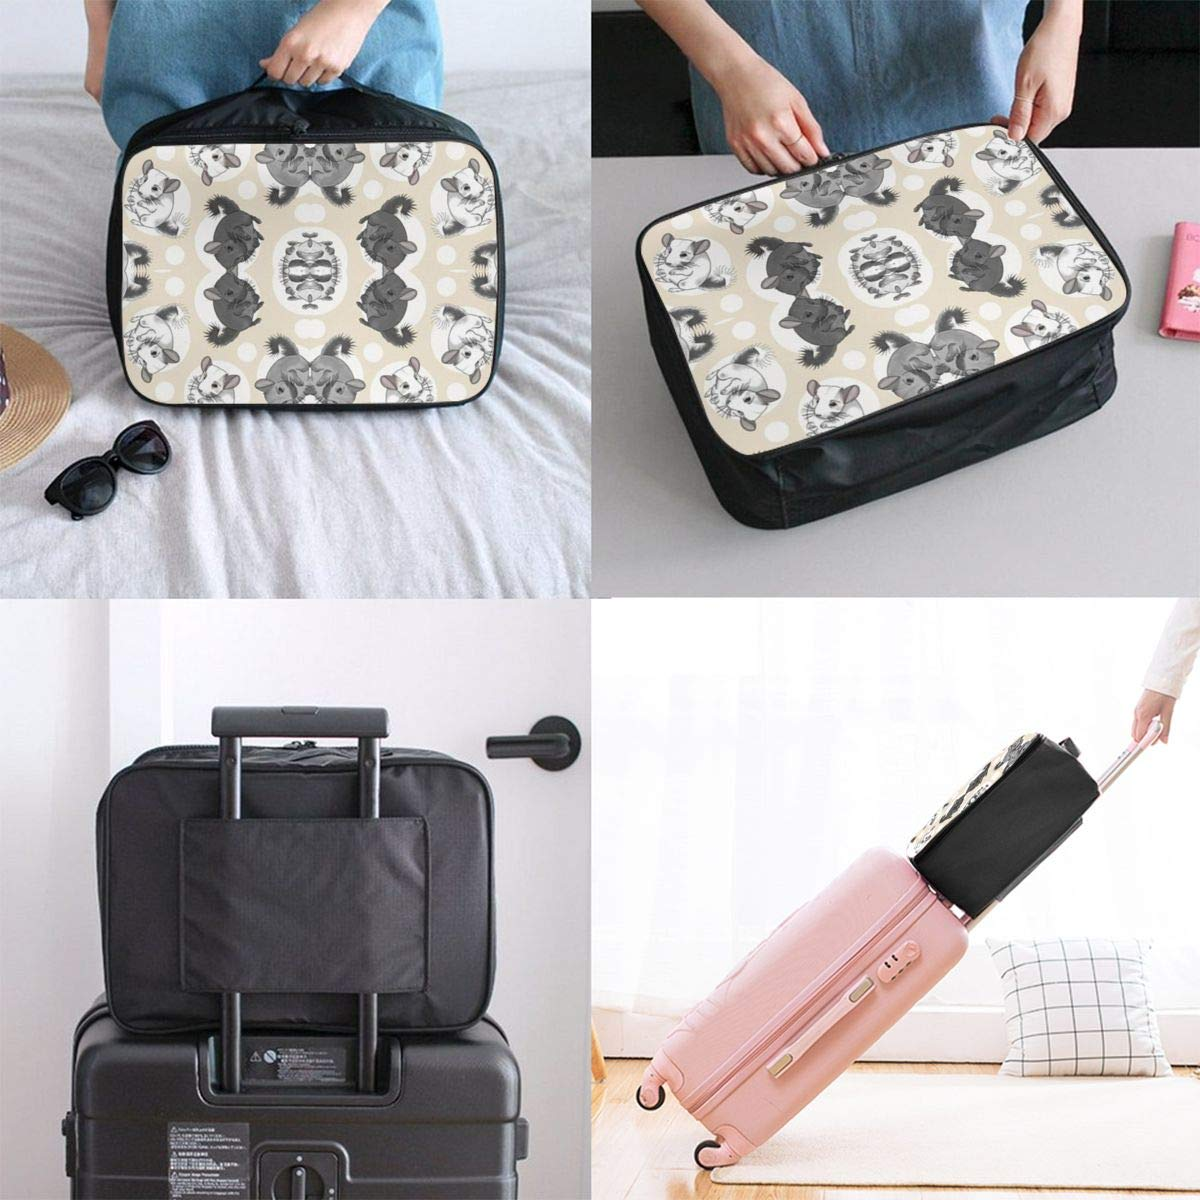 ADGAI Small Tan Chinchillas and Moon Dots Canvas Travel Weekender Bag,Fashion Custom Lightweight Large Capacity Portable Luggage Bag,Suitcase Trolley Bag